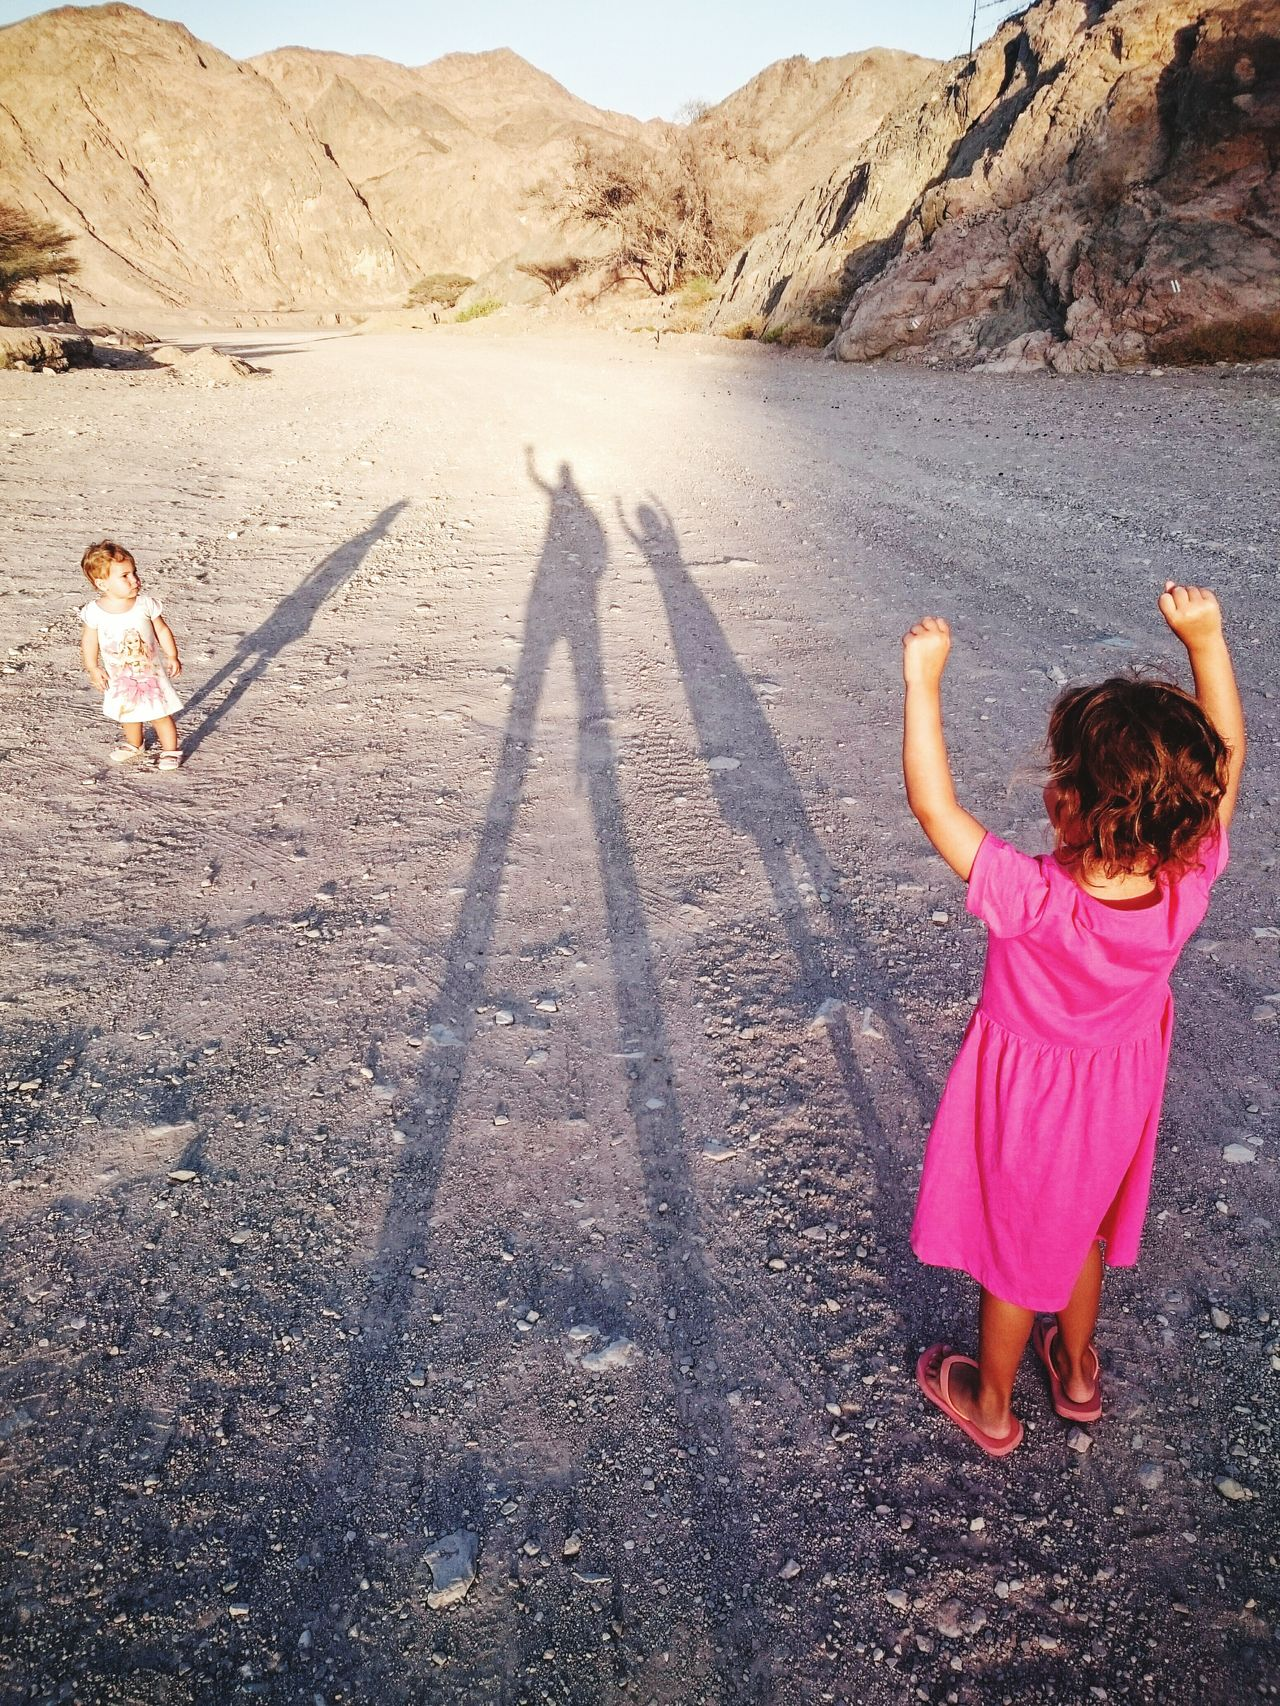 Shadow of family on arid landscape